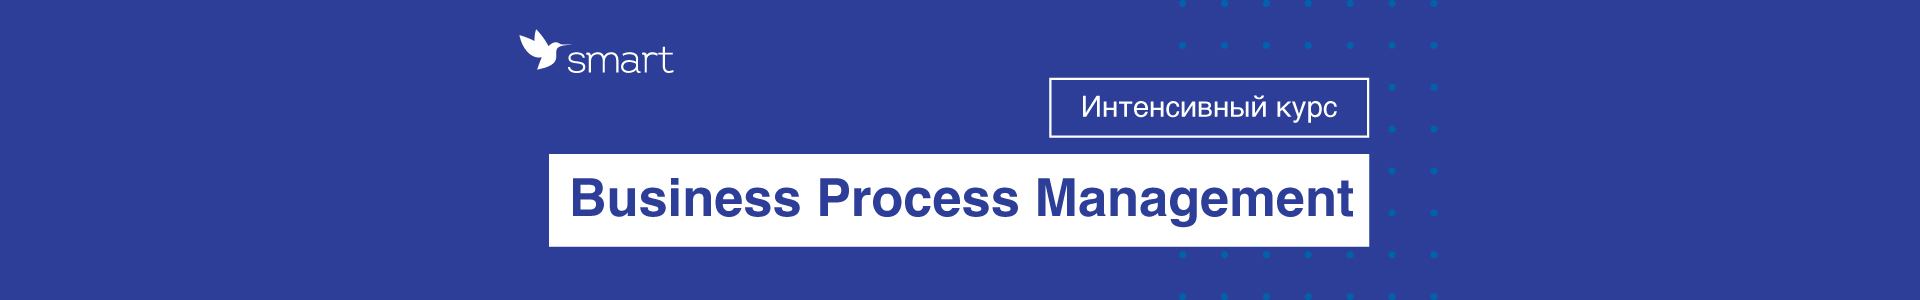 Business-Process-Management_02_web